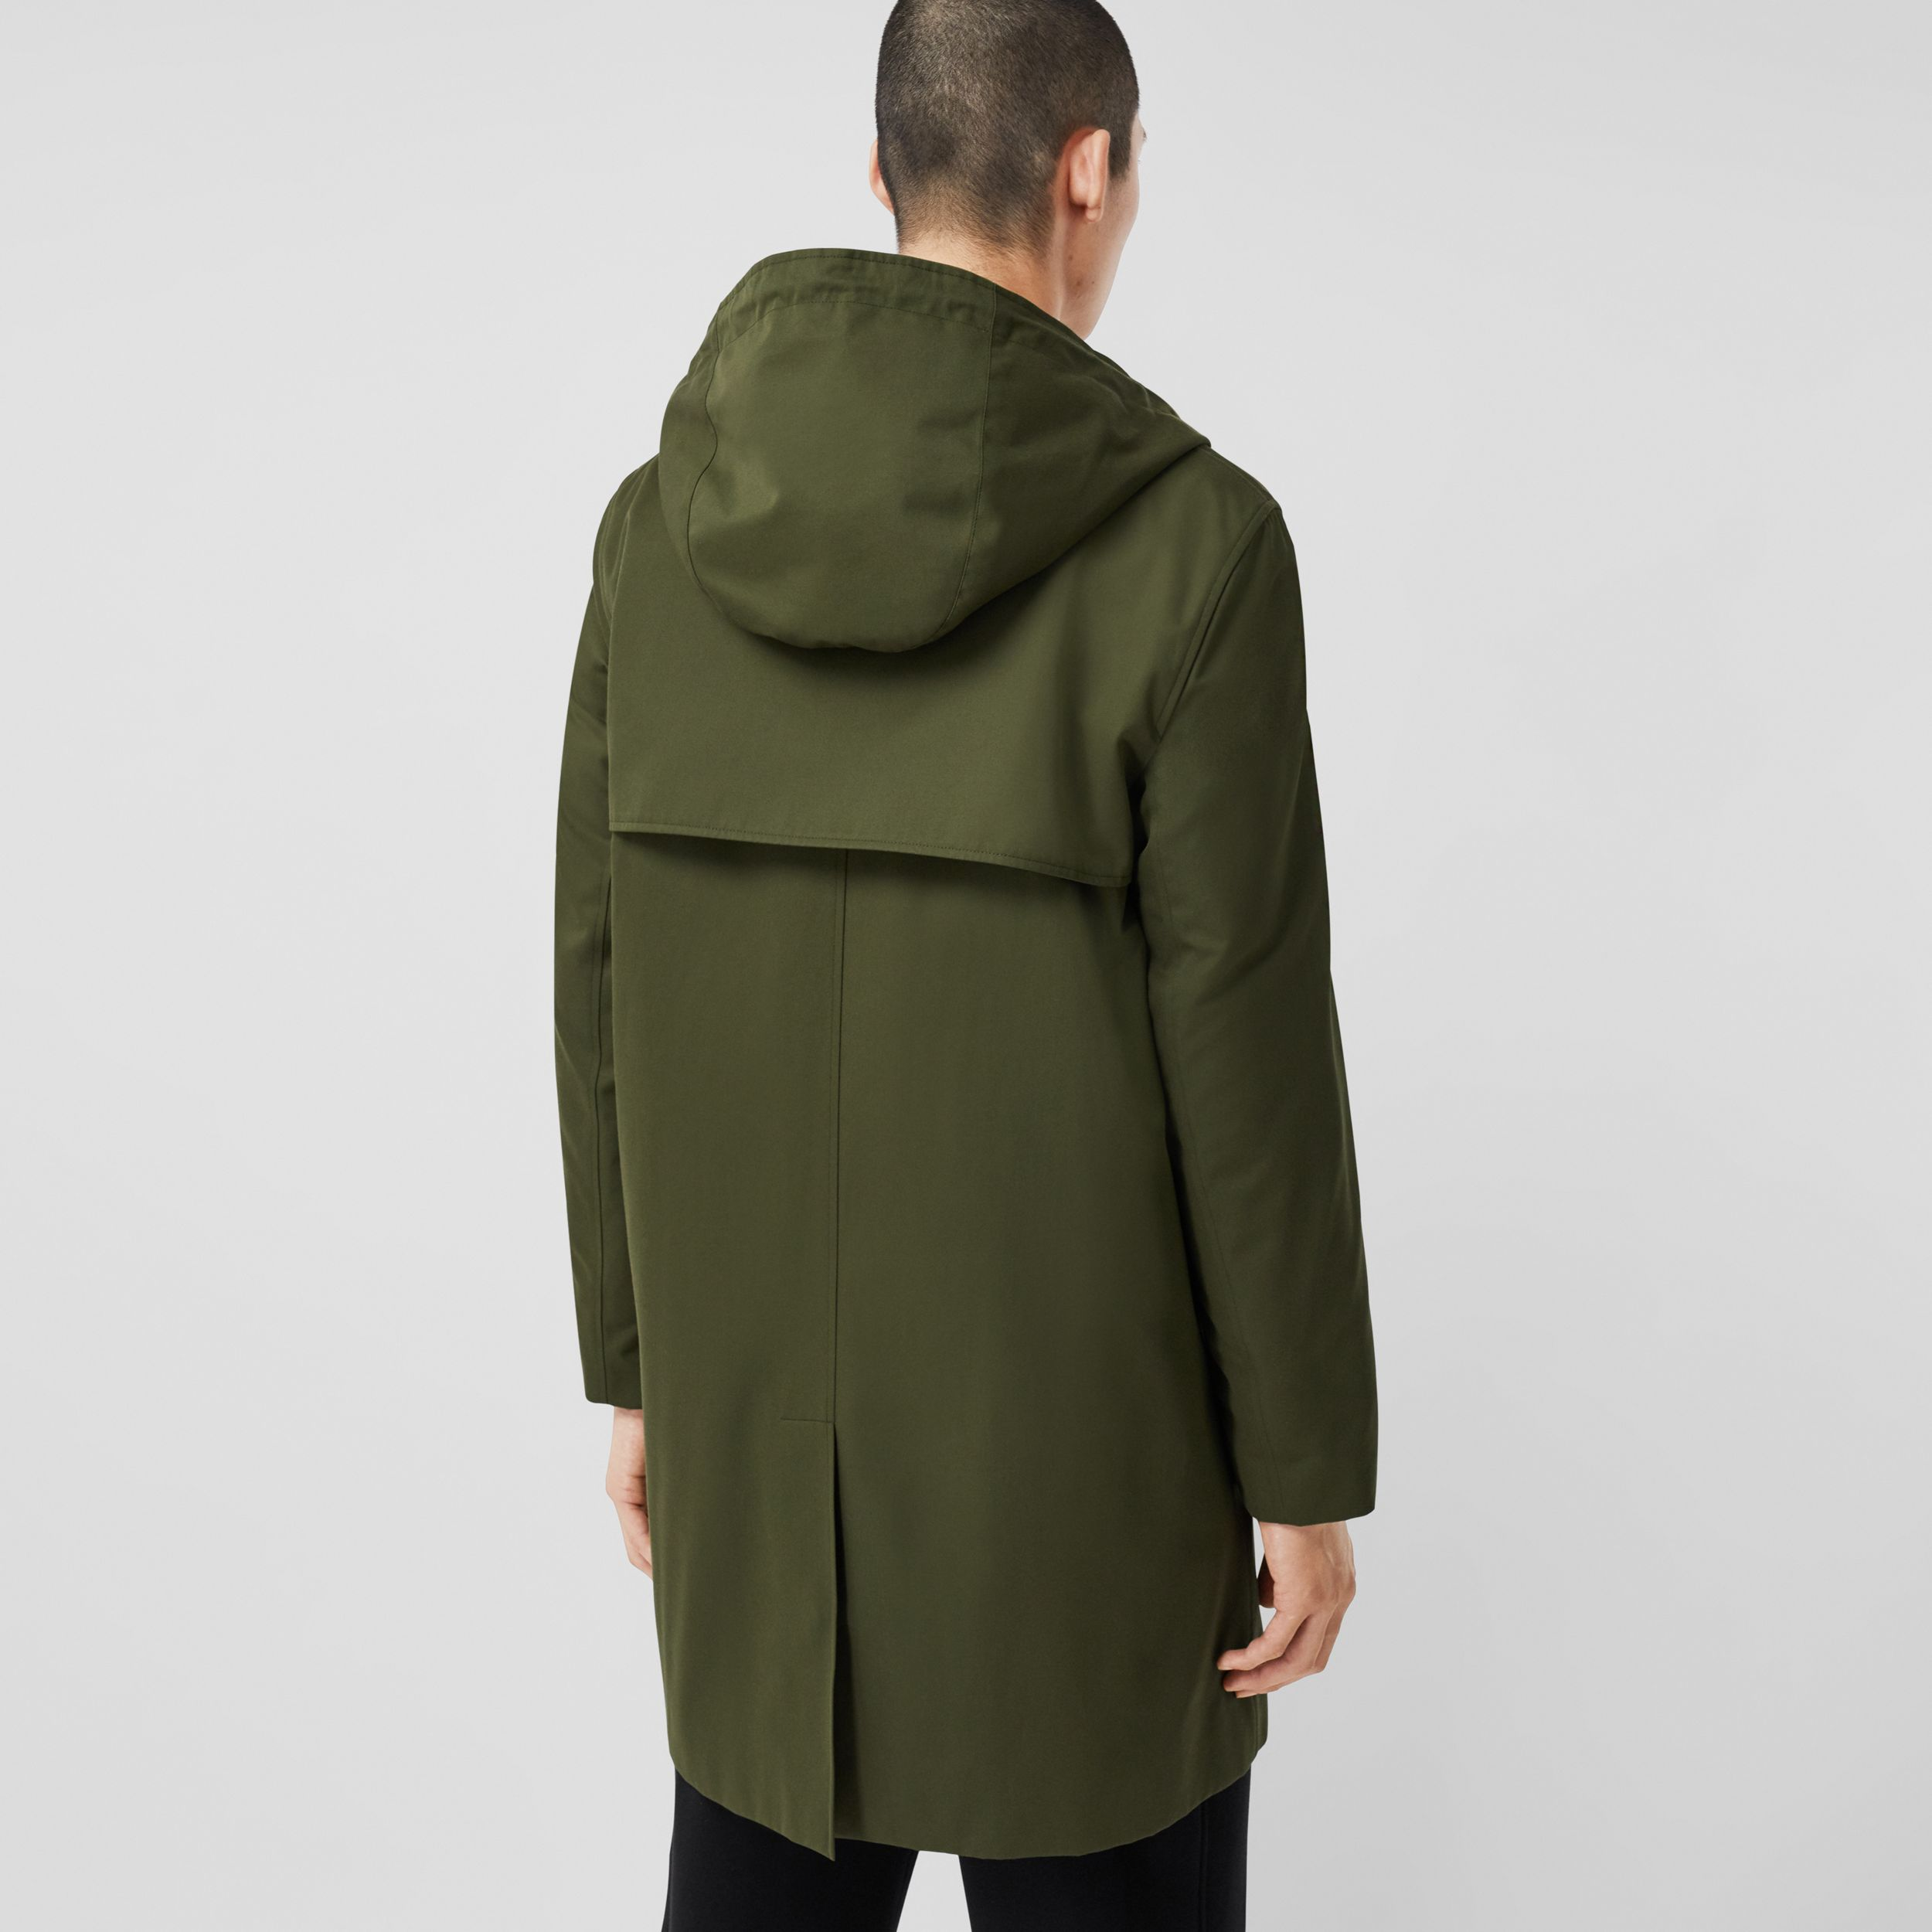 Cotton Gabardine Hooded Coat in Dark Olive Green - Men | Burberry - 3